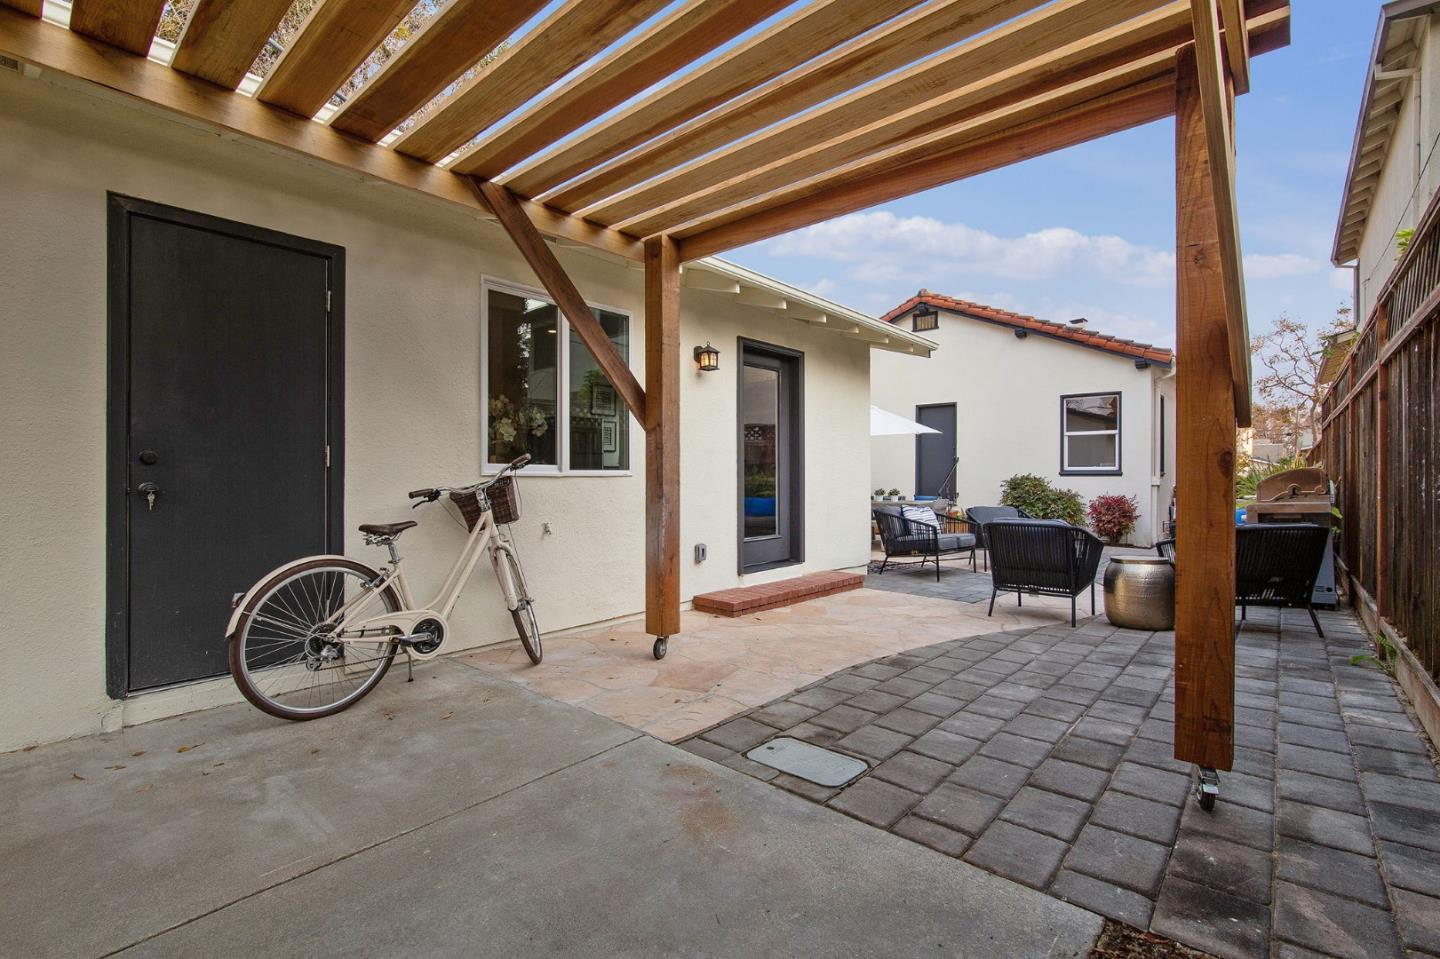 151 15th Avenue San Mateo, CA 94402 - MLS #: ML81735072